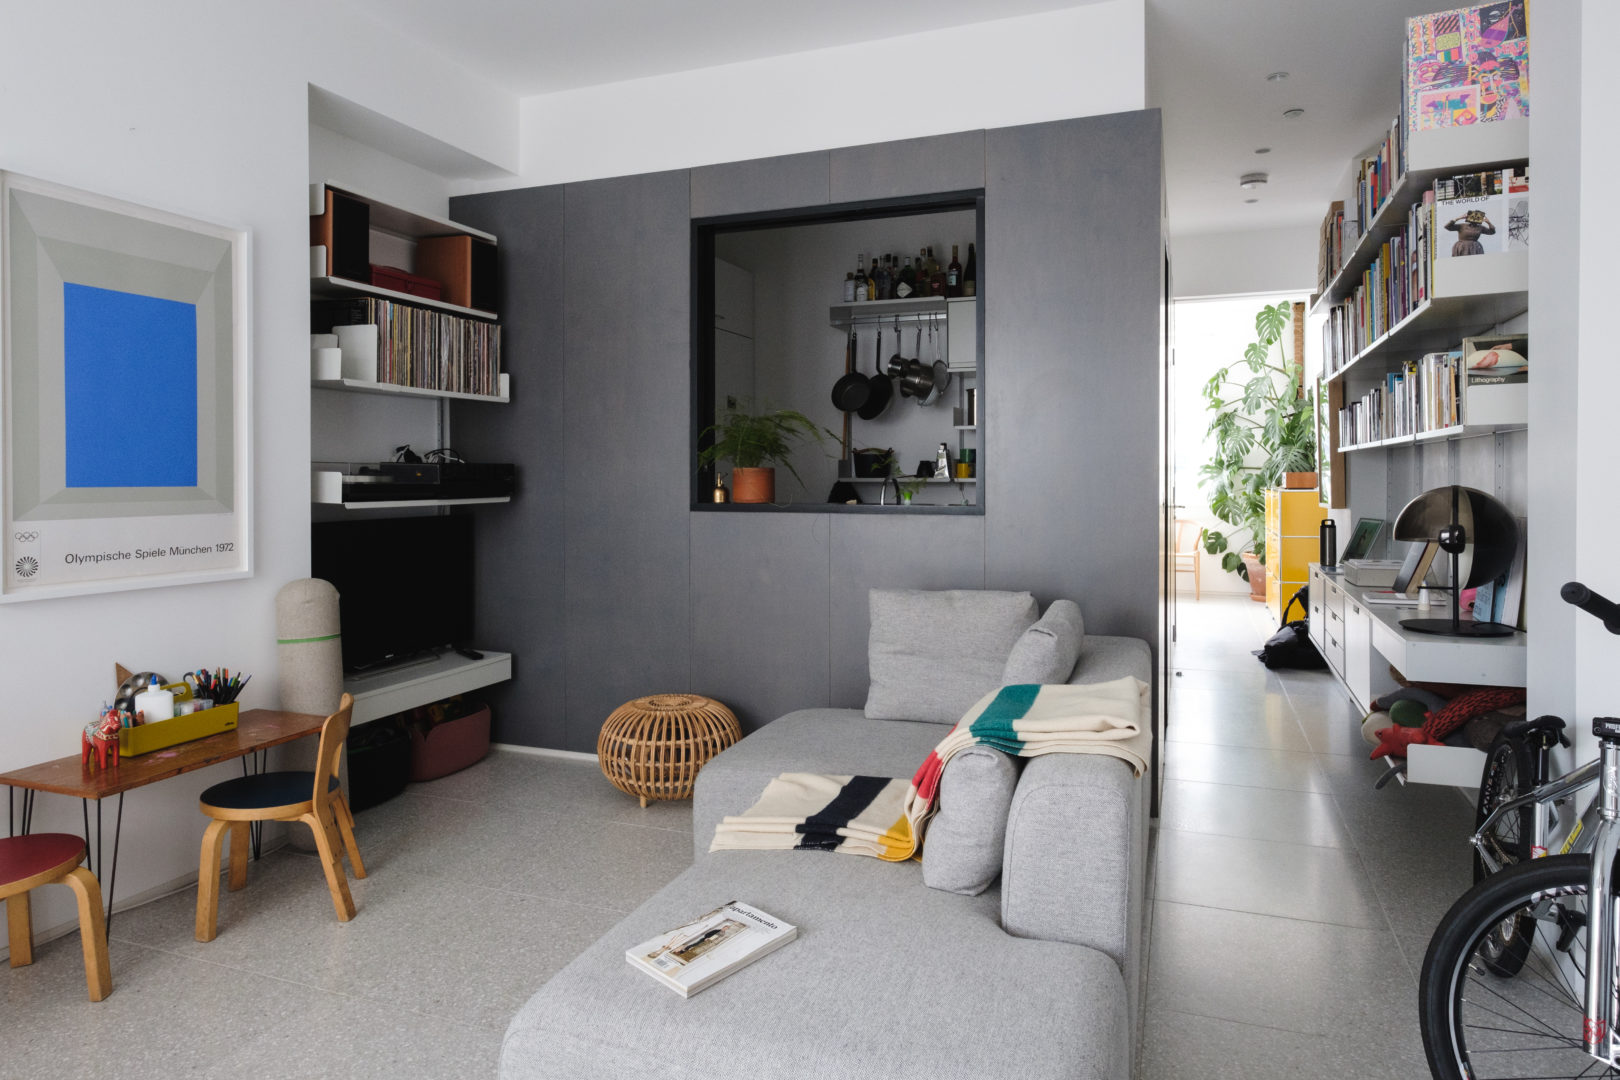 Chance-Street-vPPR-Architects-Aucoot-Architect-designed-flat